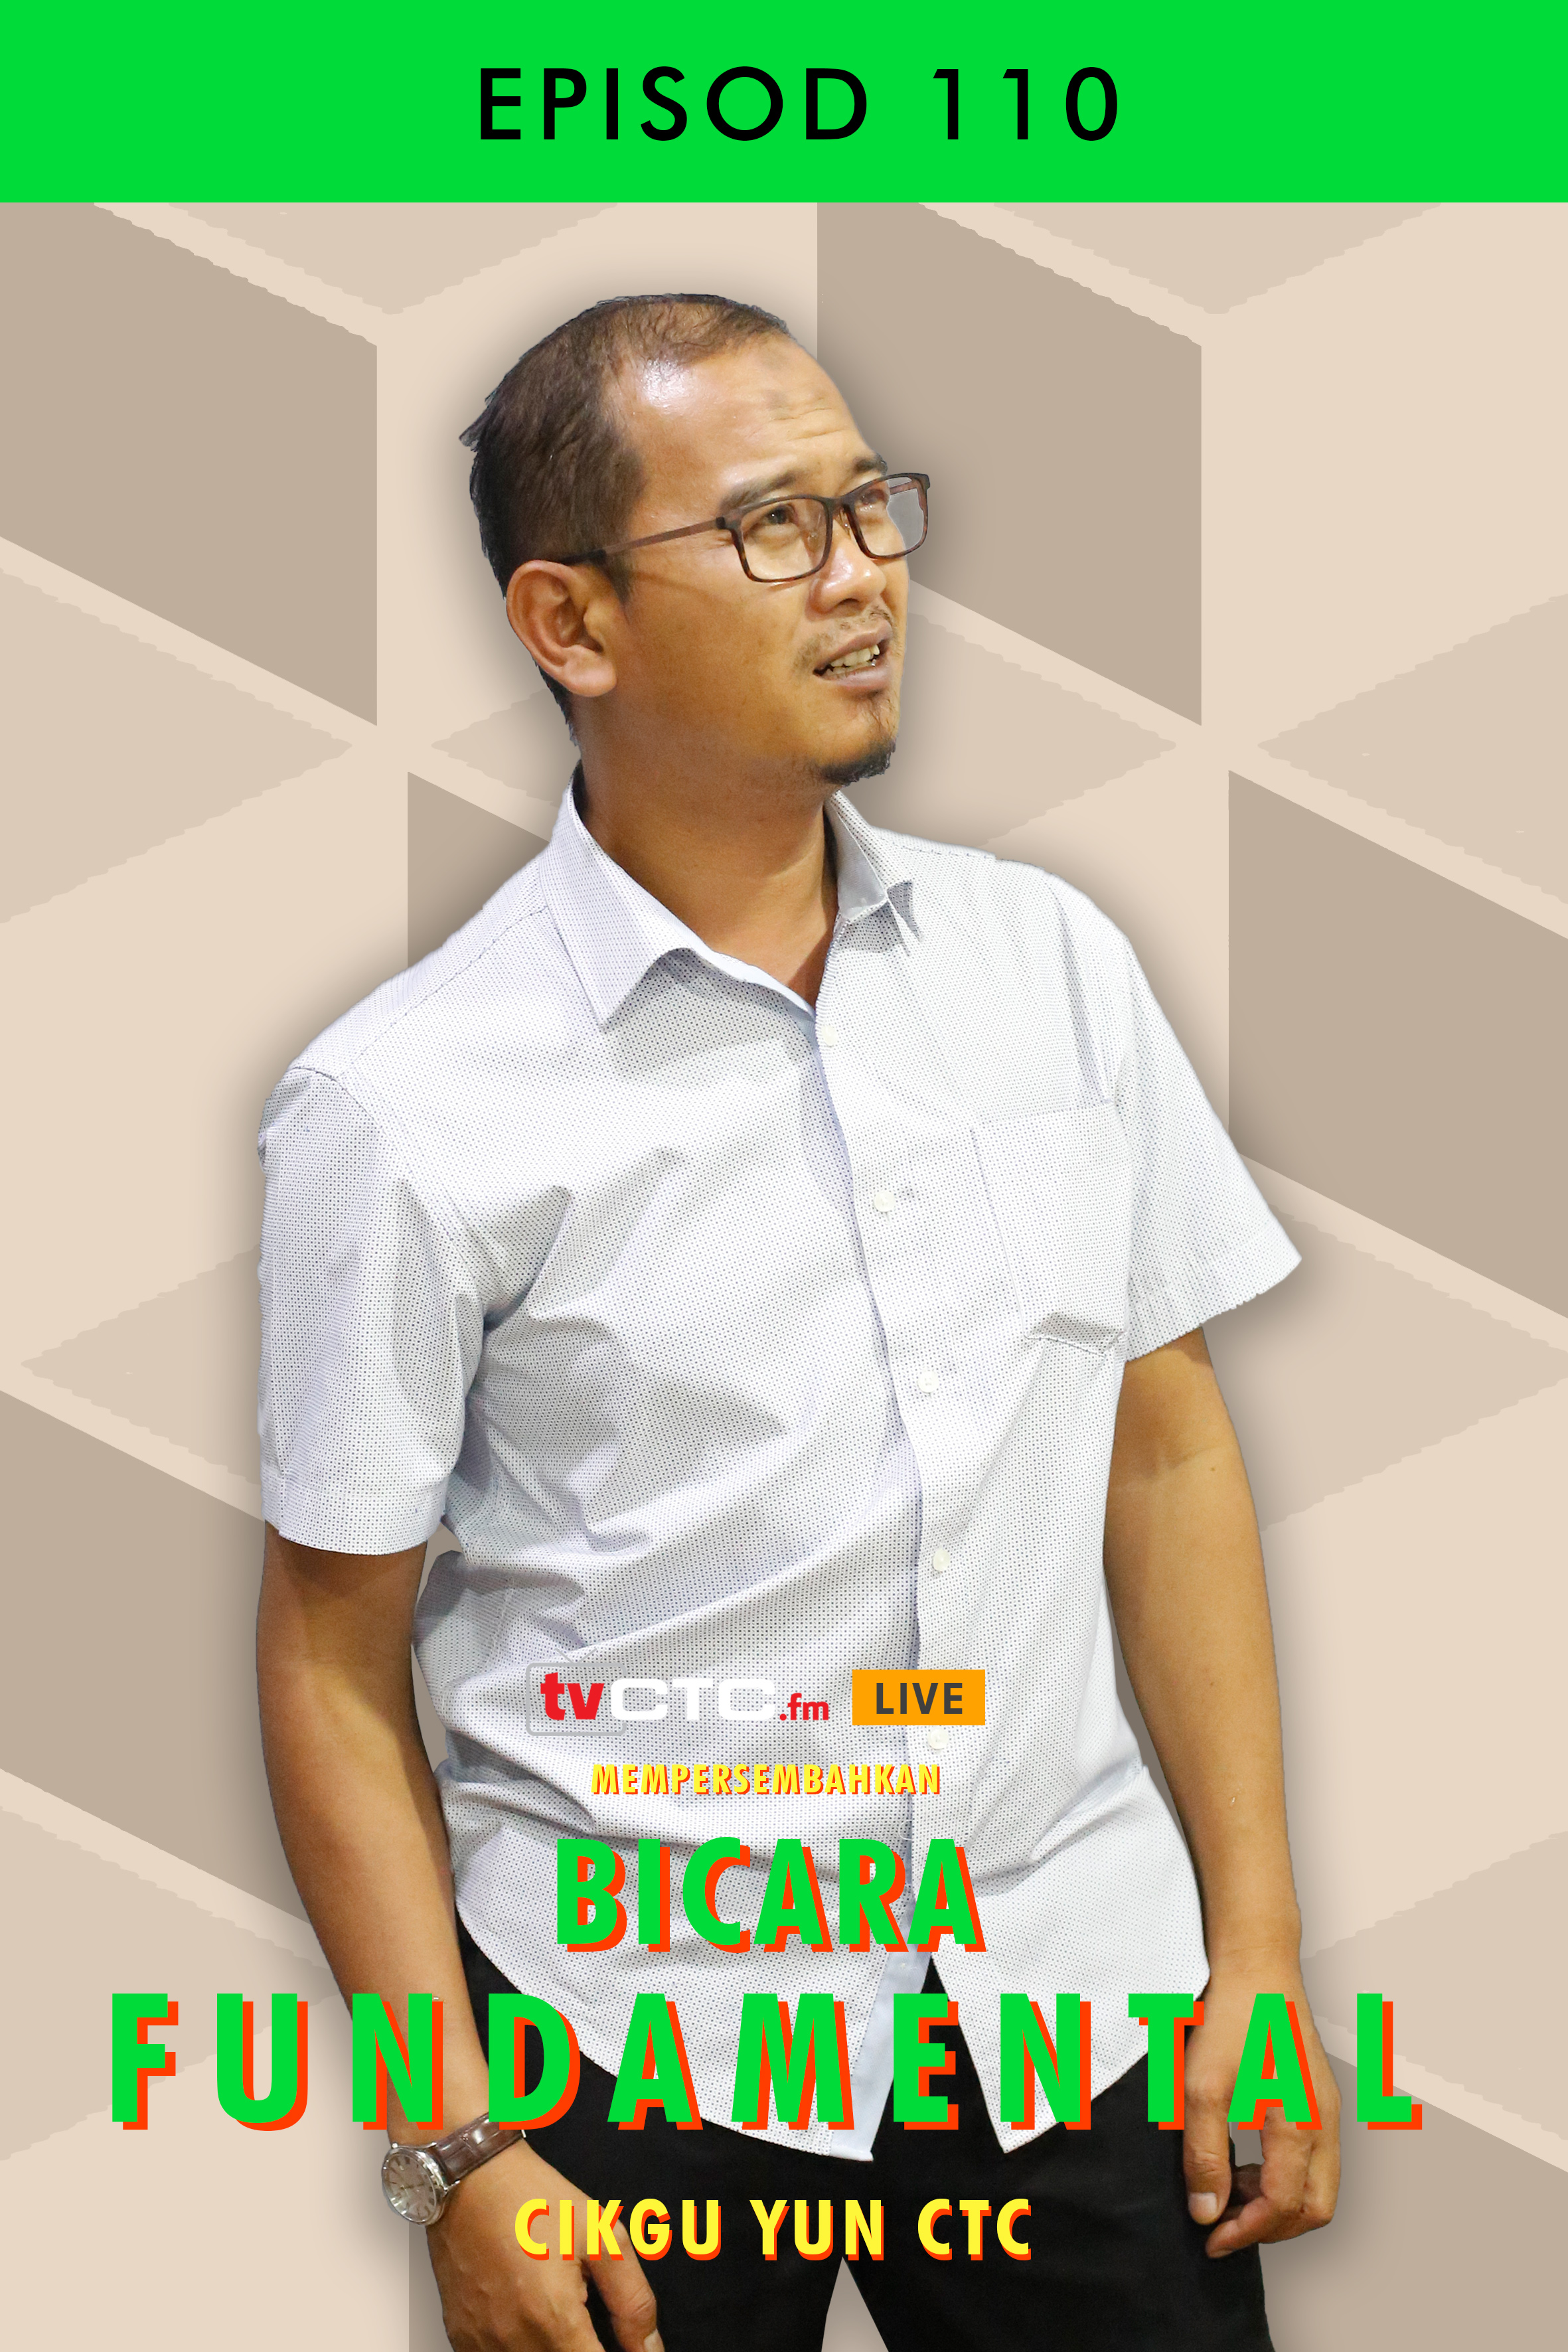 BICARA FUNDAMENTAL (Episod 110)